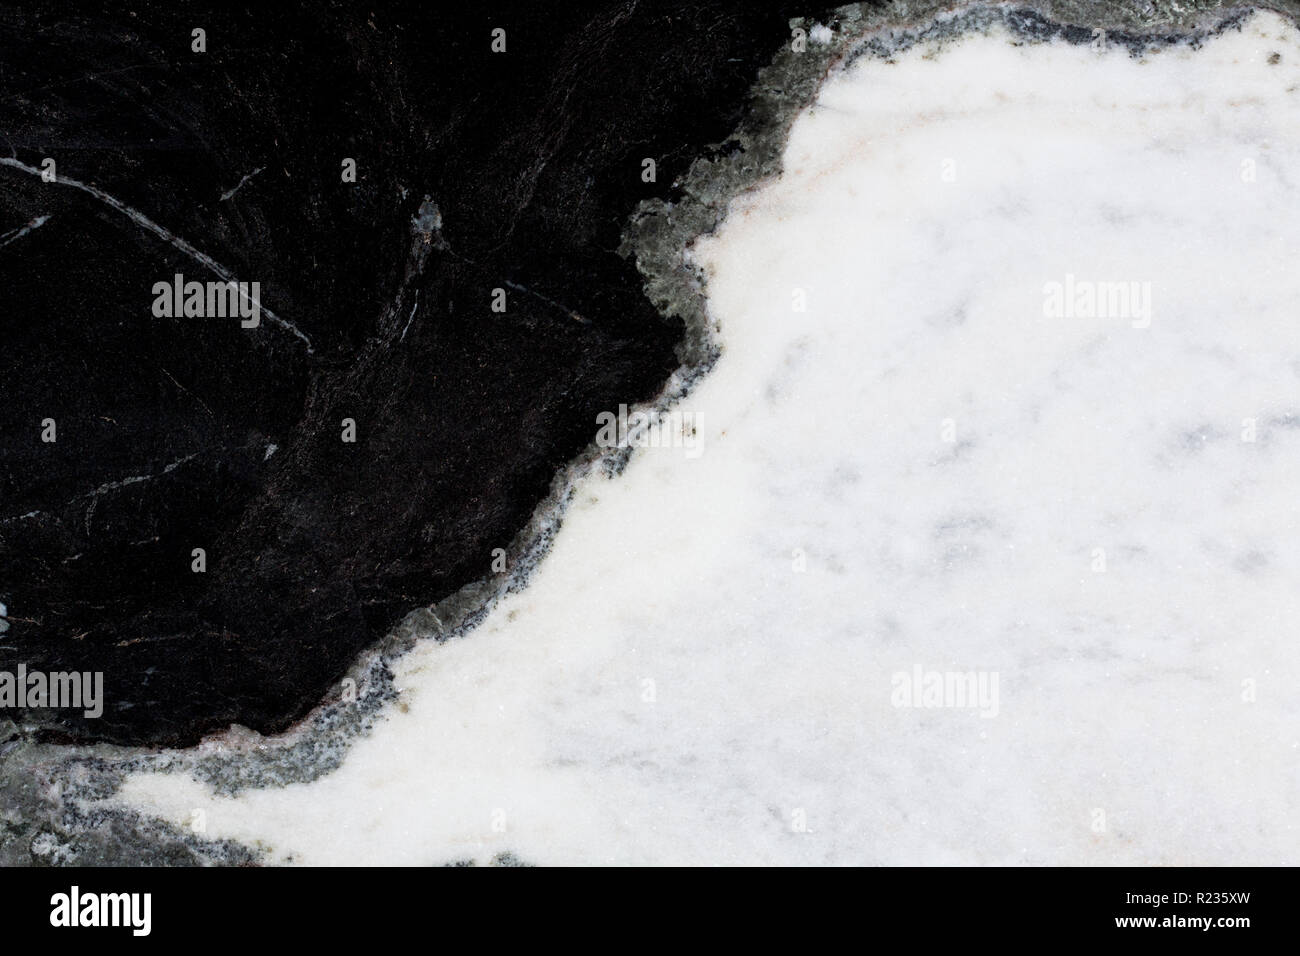 Black And White Marble Texture With Grey In The Middle Stock Photo Alamy